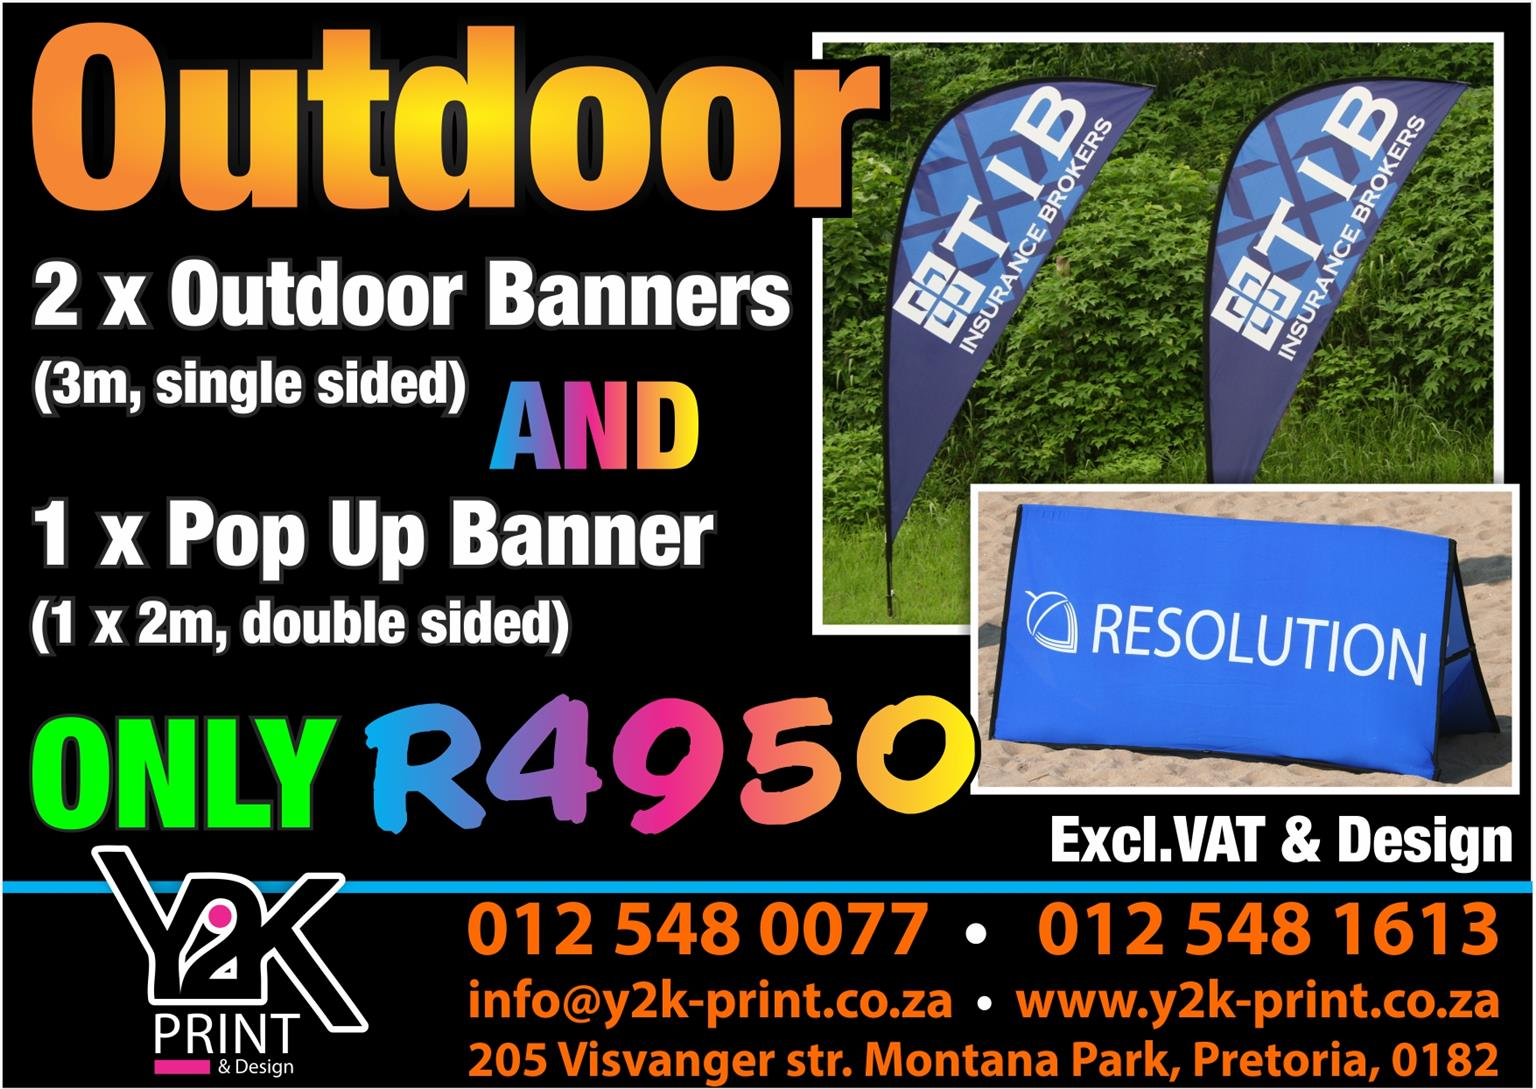 Outdoor and Pop up banner